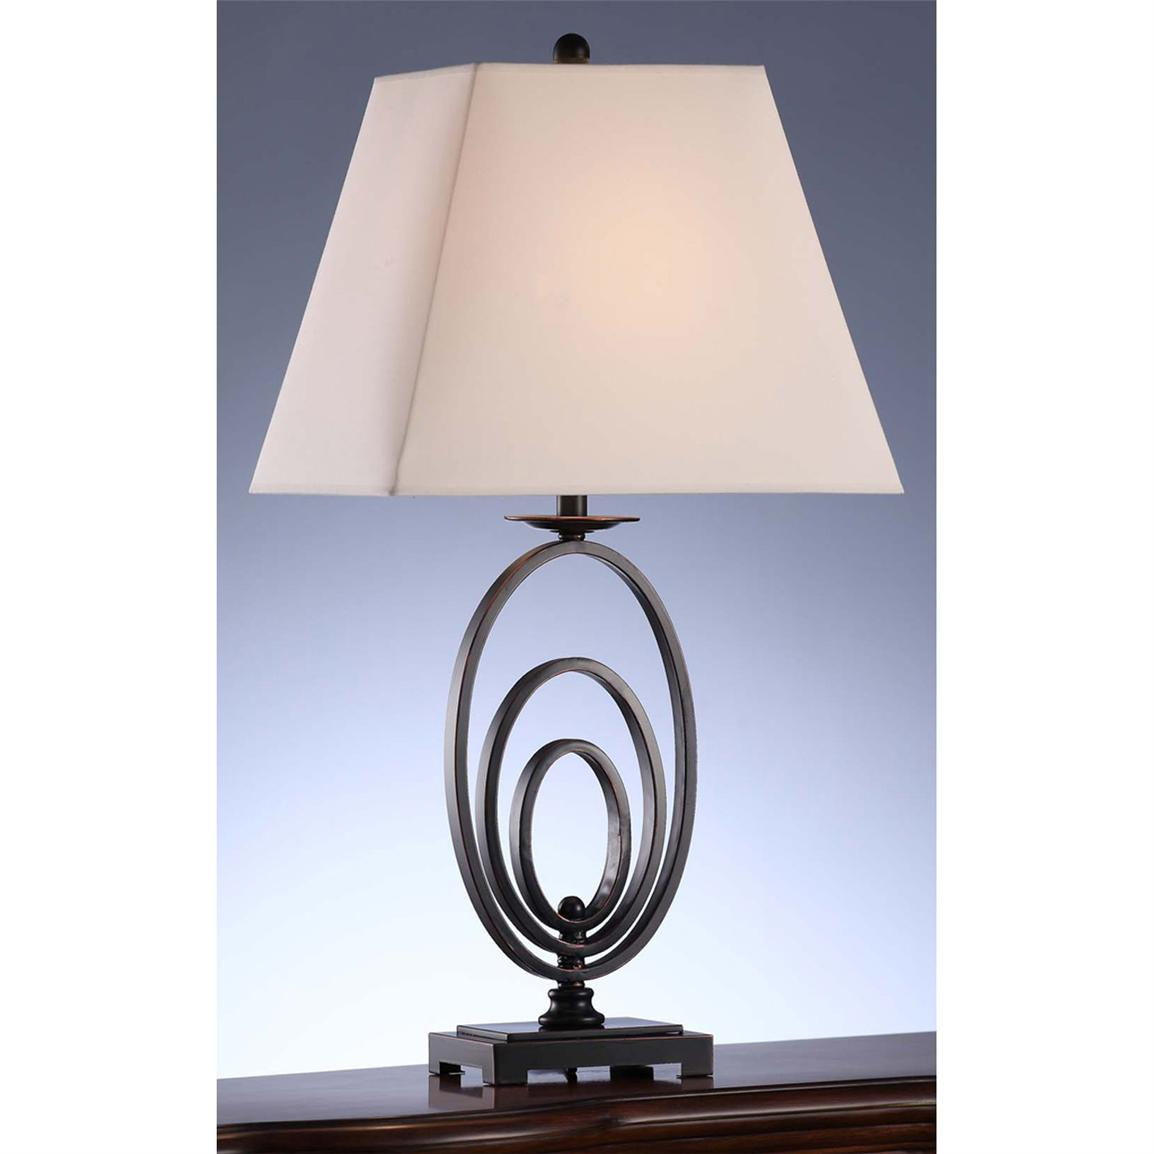 Oval Ring Table Lamp from Crestview Collection